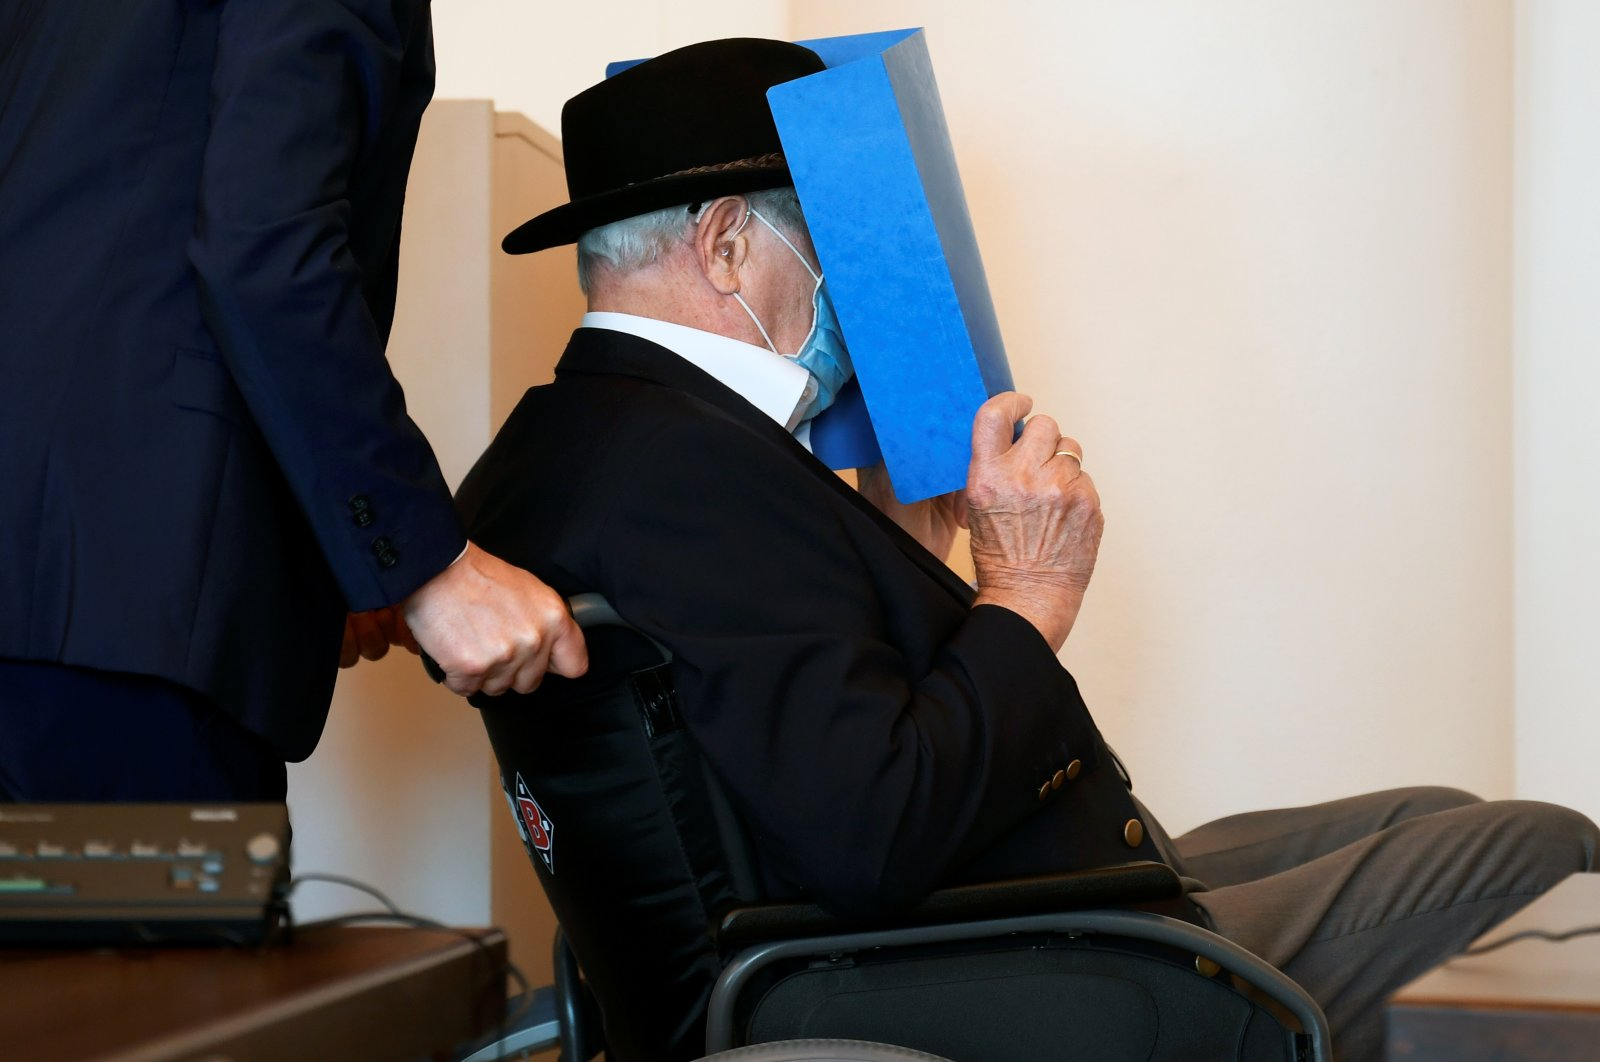 The 93-year-old German Bruno D. accused of being an SS guard involved in killings of thousands of prisoners, many of them Jewish, between  August 1944 and April 1945, in the Stutthof Nazi concentration camp near Gdansk, Poland, arrives for the verdict in his trial, in a courtroom in Hamburg, Germany, July 23, 2020. (Reuters Photo)